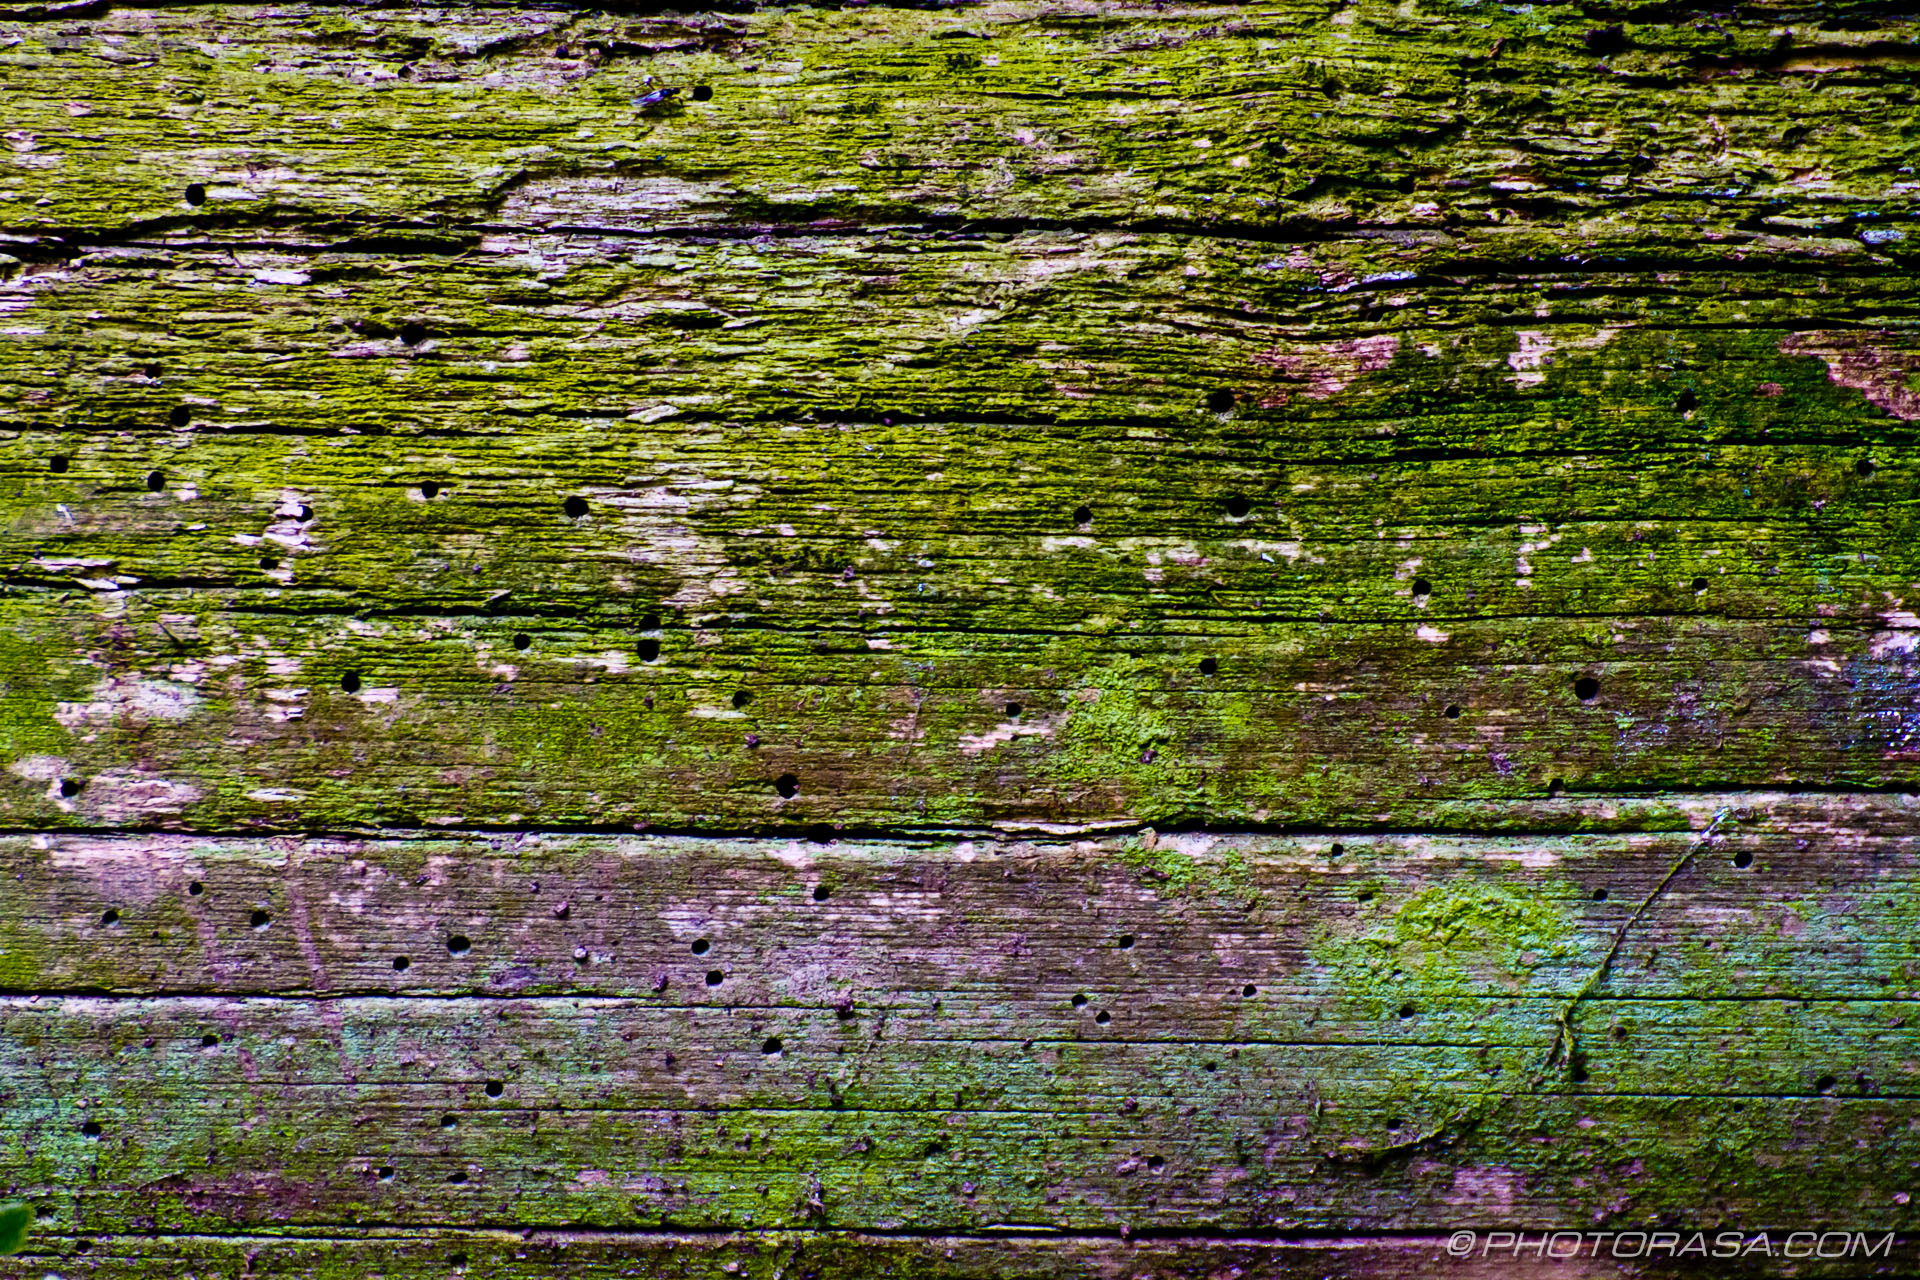 https://photorasa.com/wood-and-bark-textures/old-wood-with-woodworm-and-moss-stains/